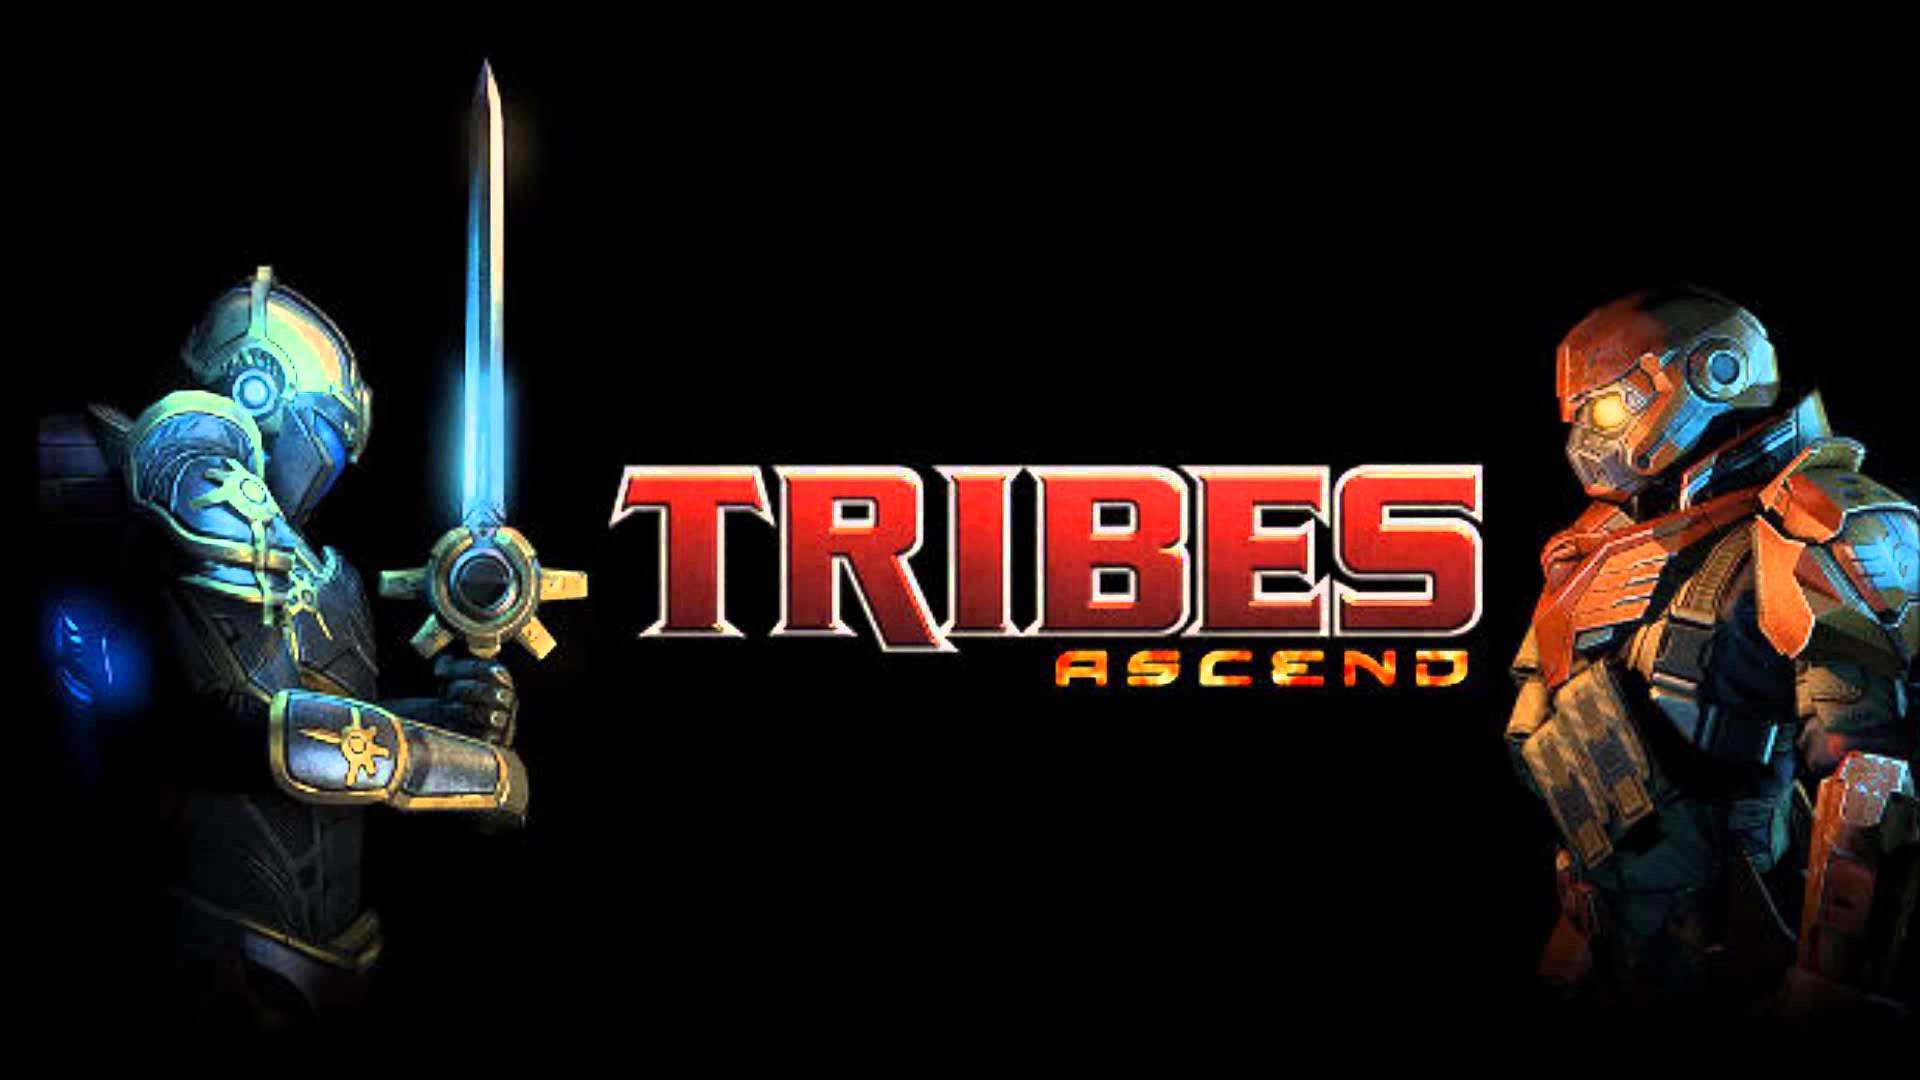 High Resolution Wallpaper | Tribes Ascend 1920x1080 px